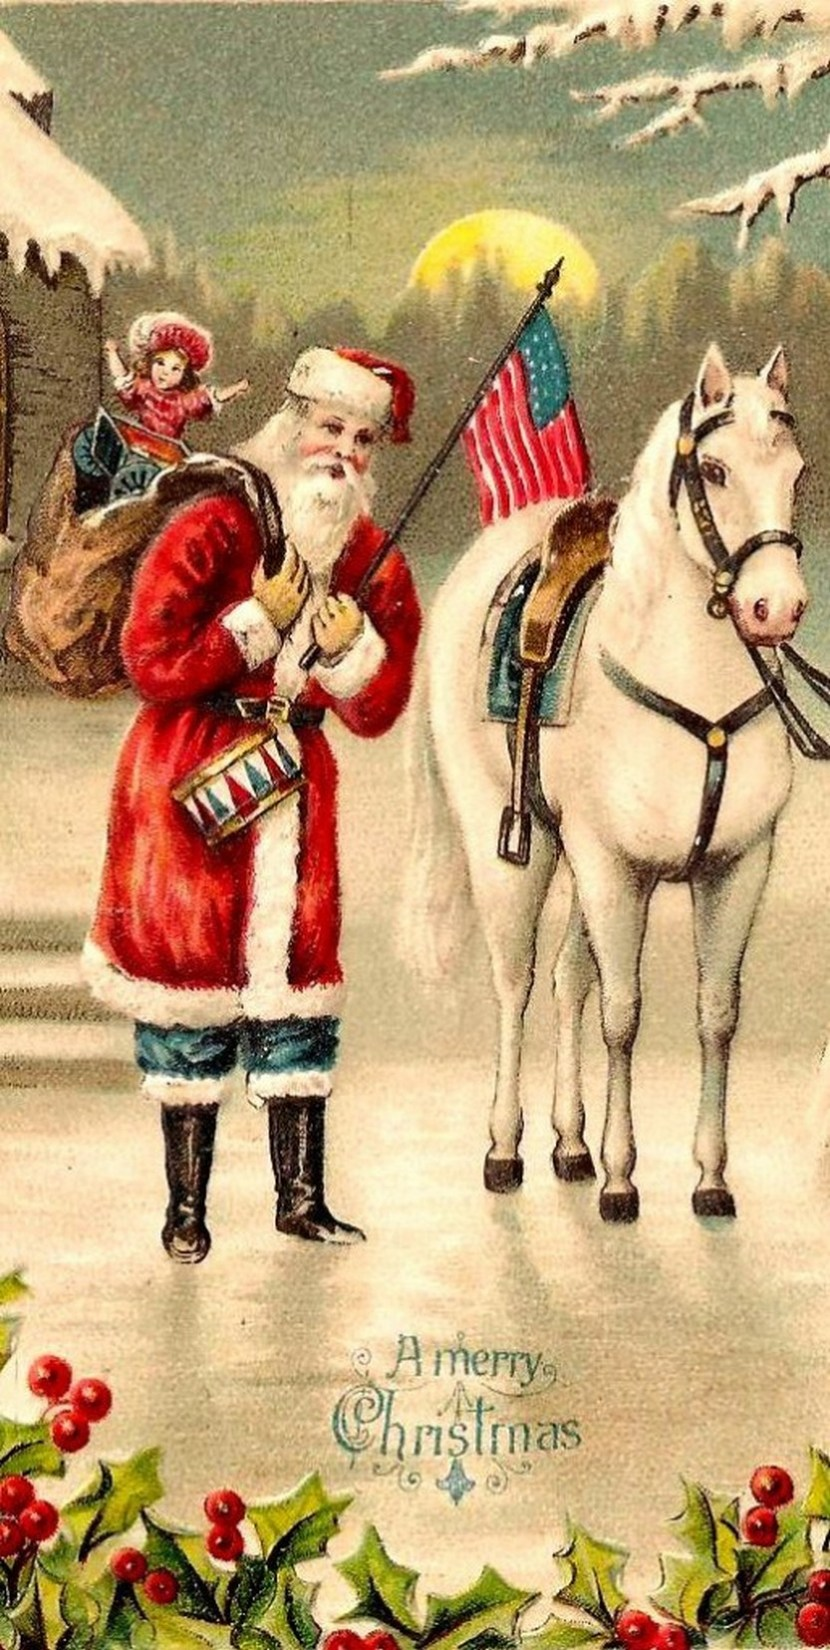 Santa Claus, St. Nick, Father Time, Christmas with American flag